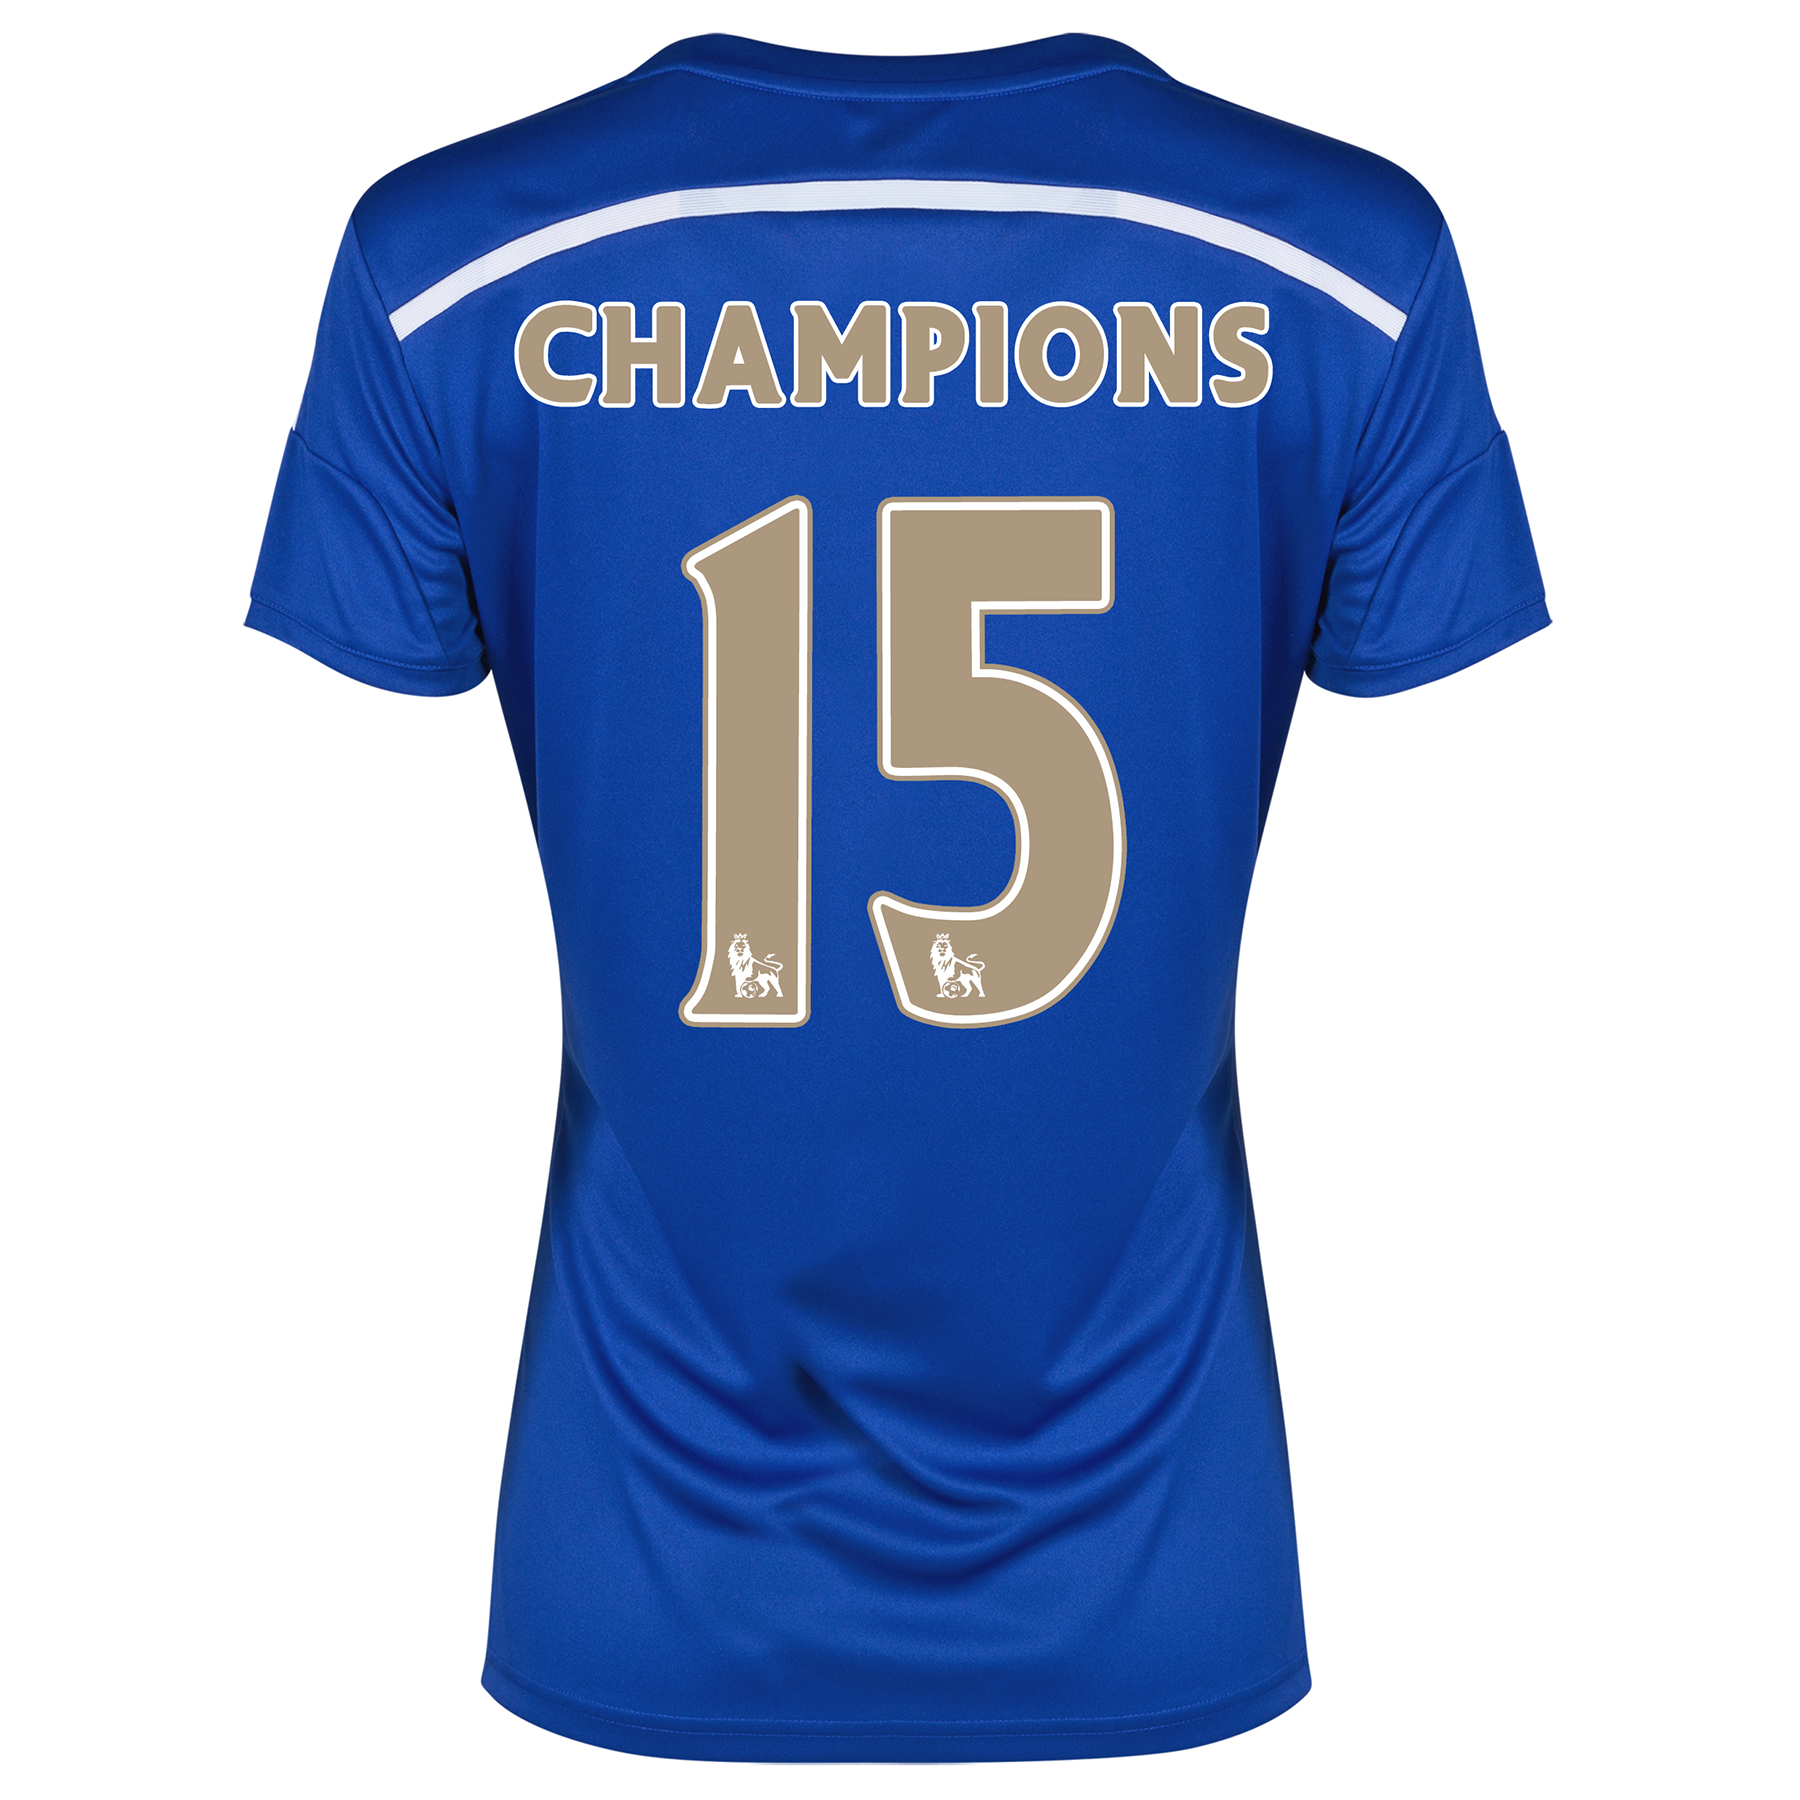 Chelsea Champions 2015 Home Shirt - Womens